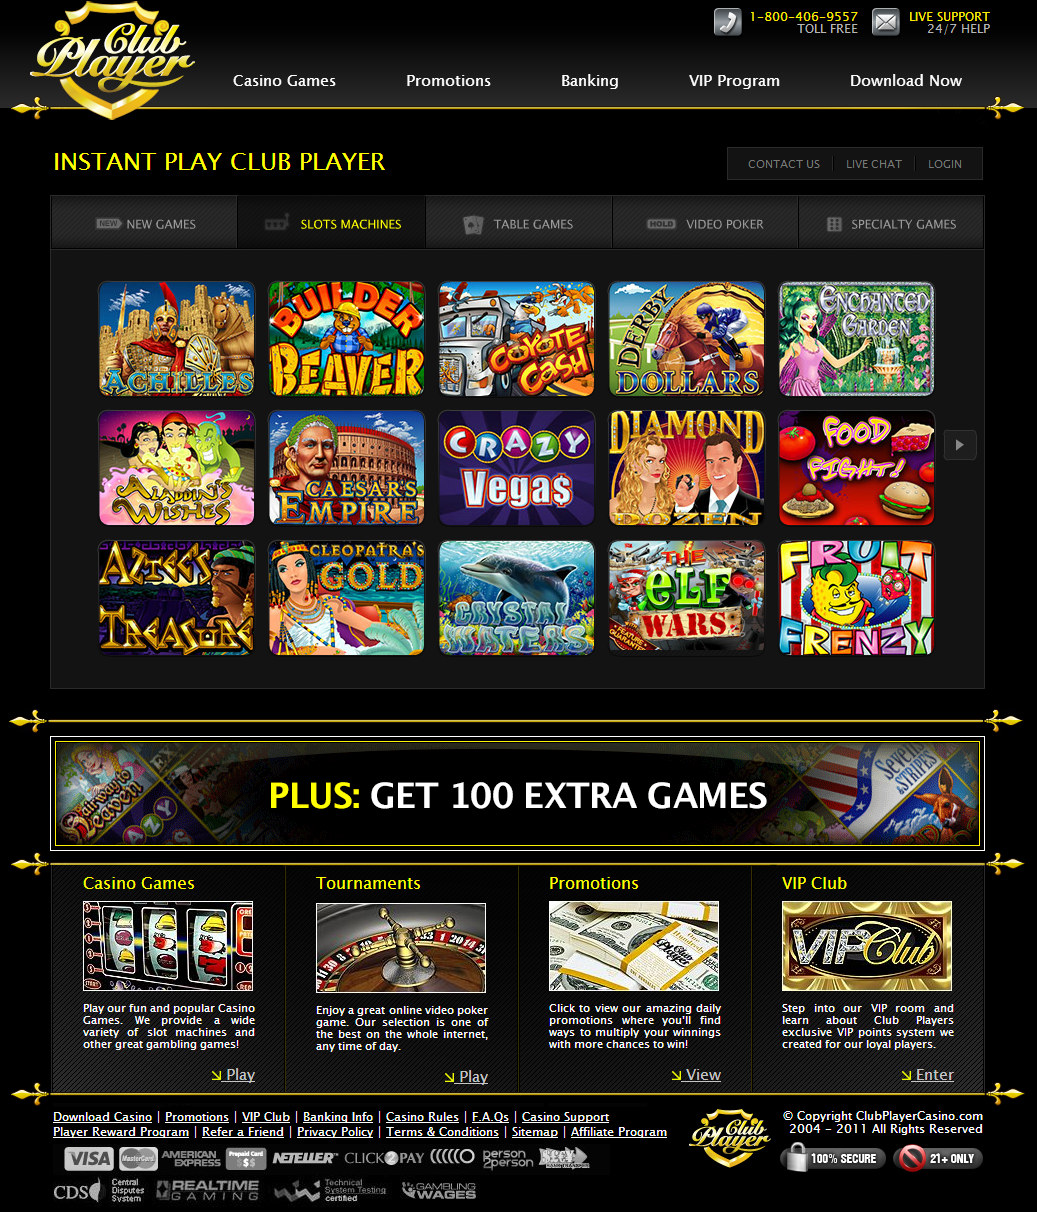 Jupiter Club Casino Review – Is this A Scam/Site to Avoid